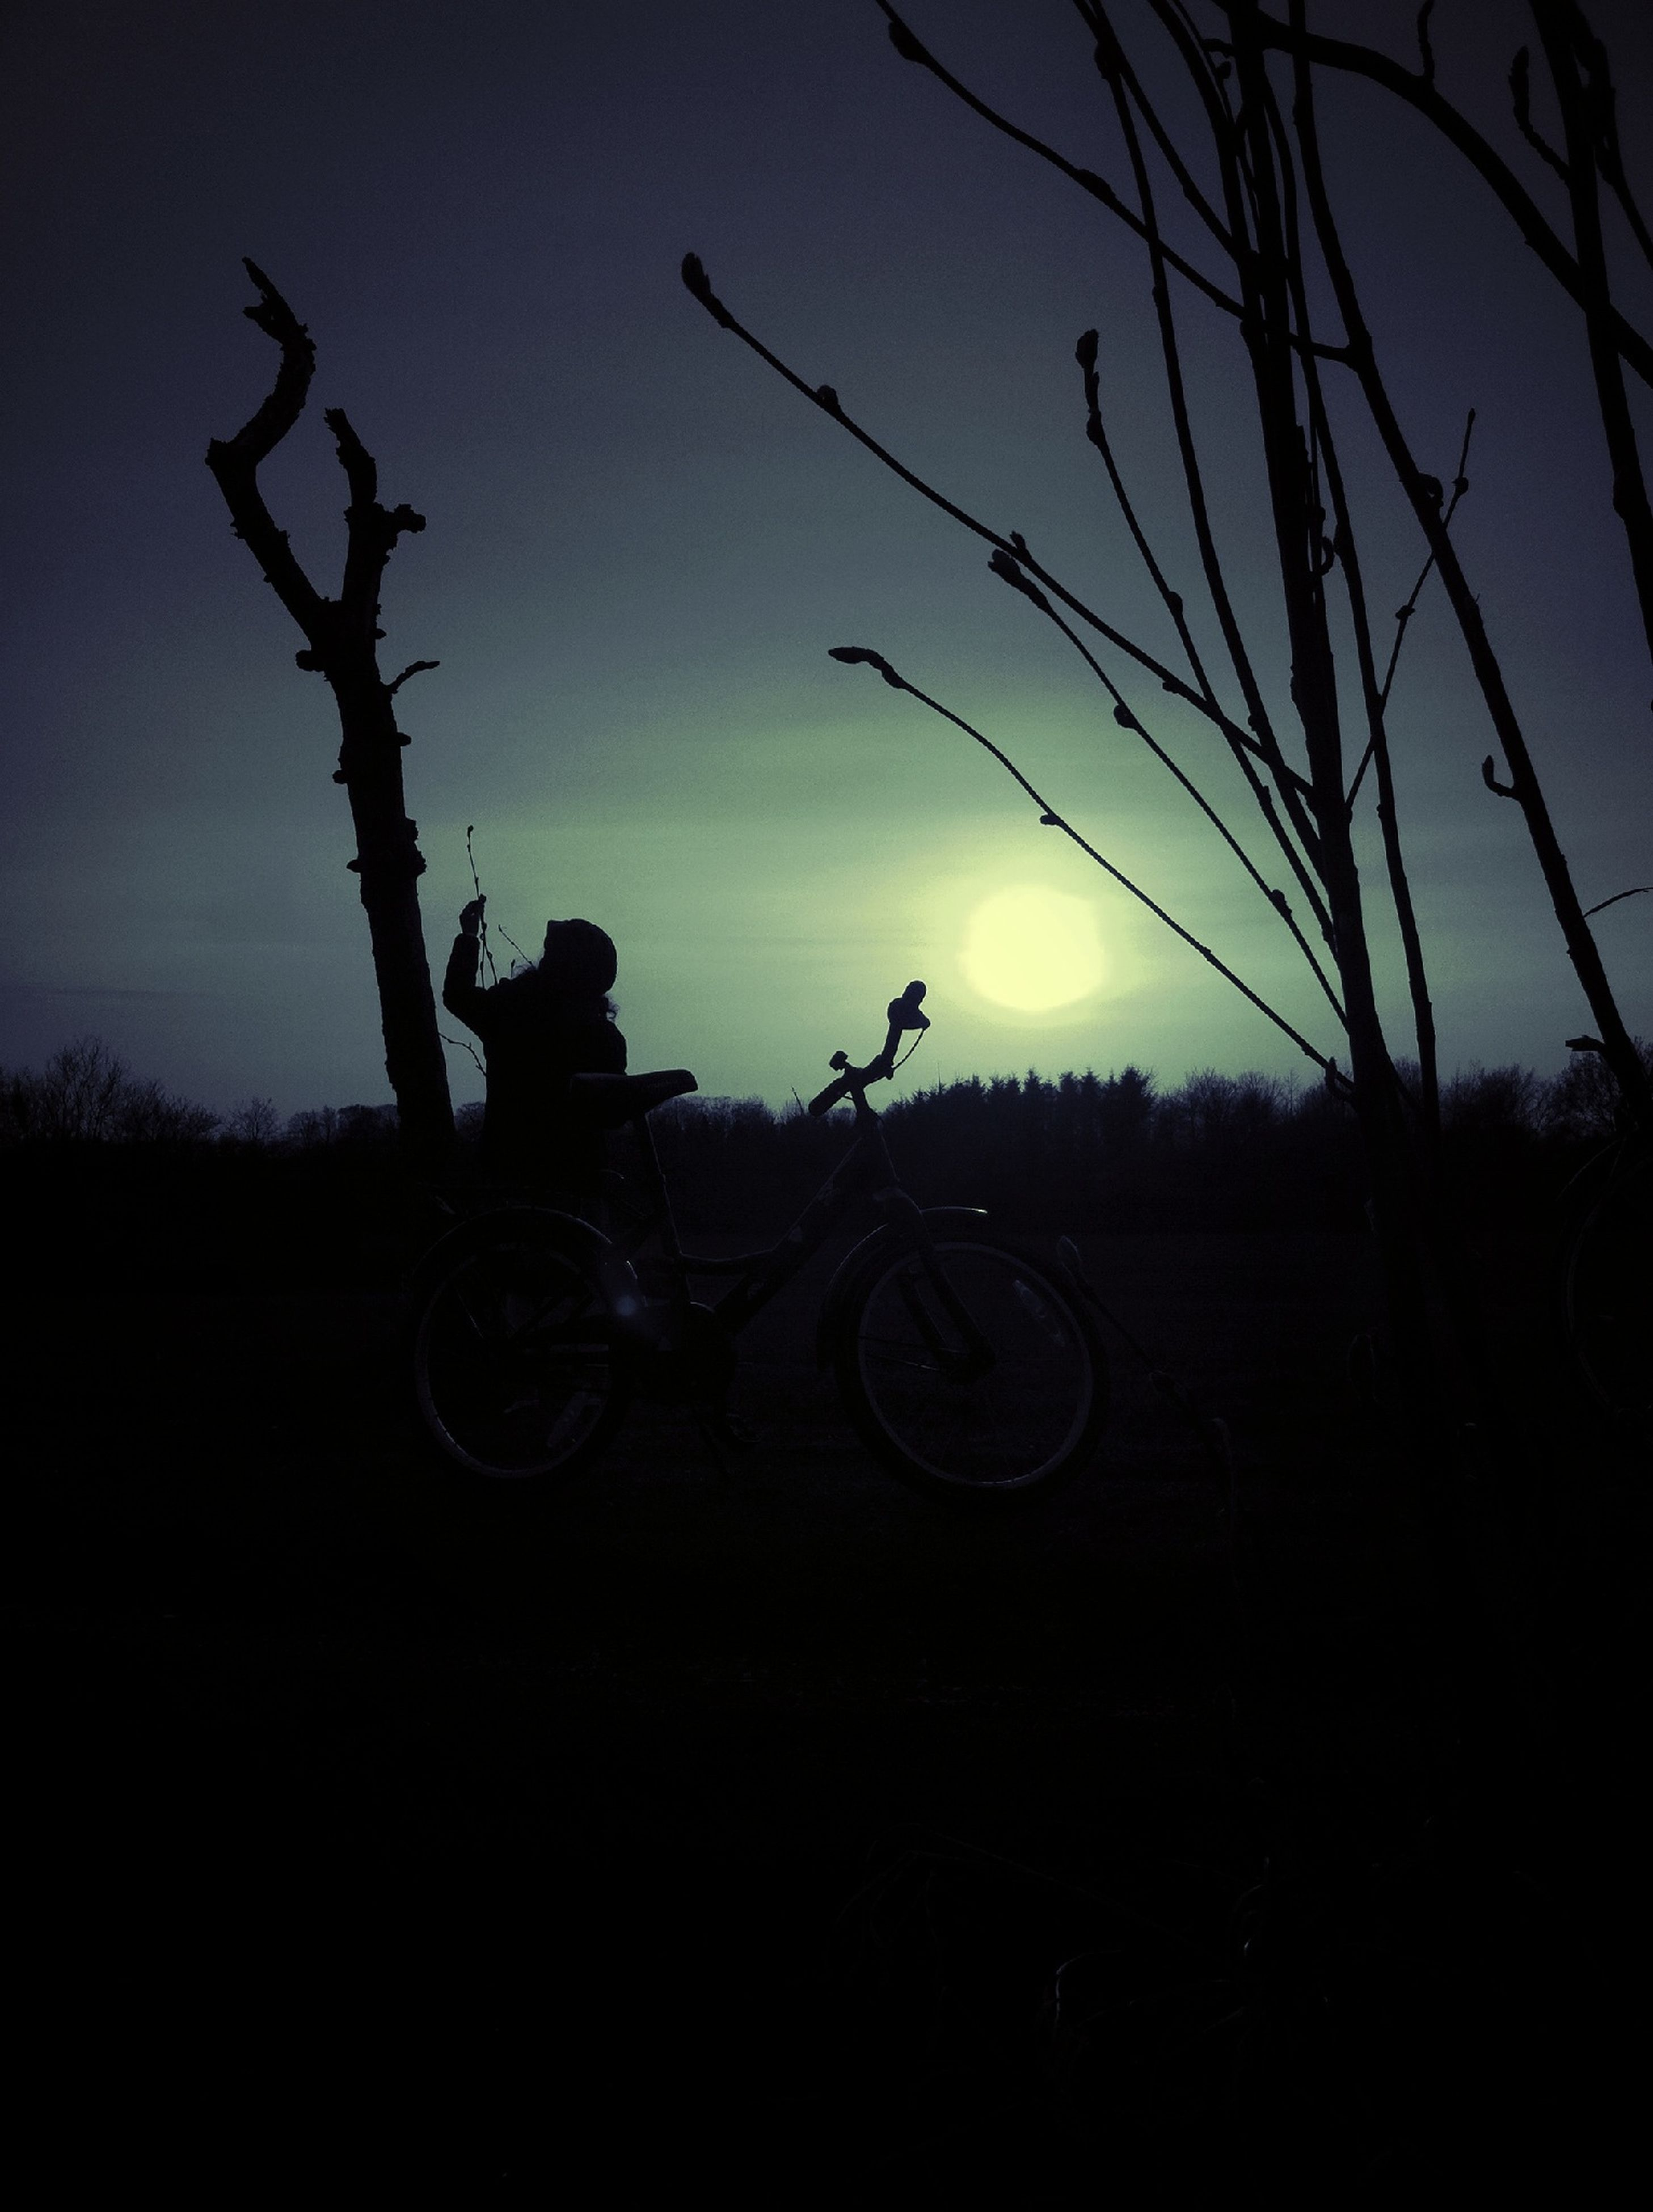 silhouette, bare tree, transportation, bicycle, sky, tree, land vehicle, landscape, sunset, field, tranquility, tranquil scene, mode of transport, clear sky, nature, scenics, outdoors, copy space, dusk, beauty in nature